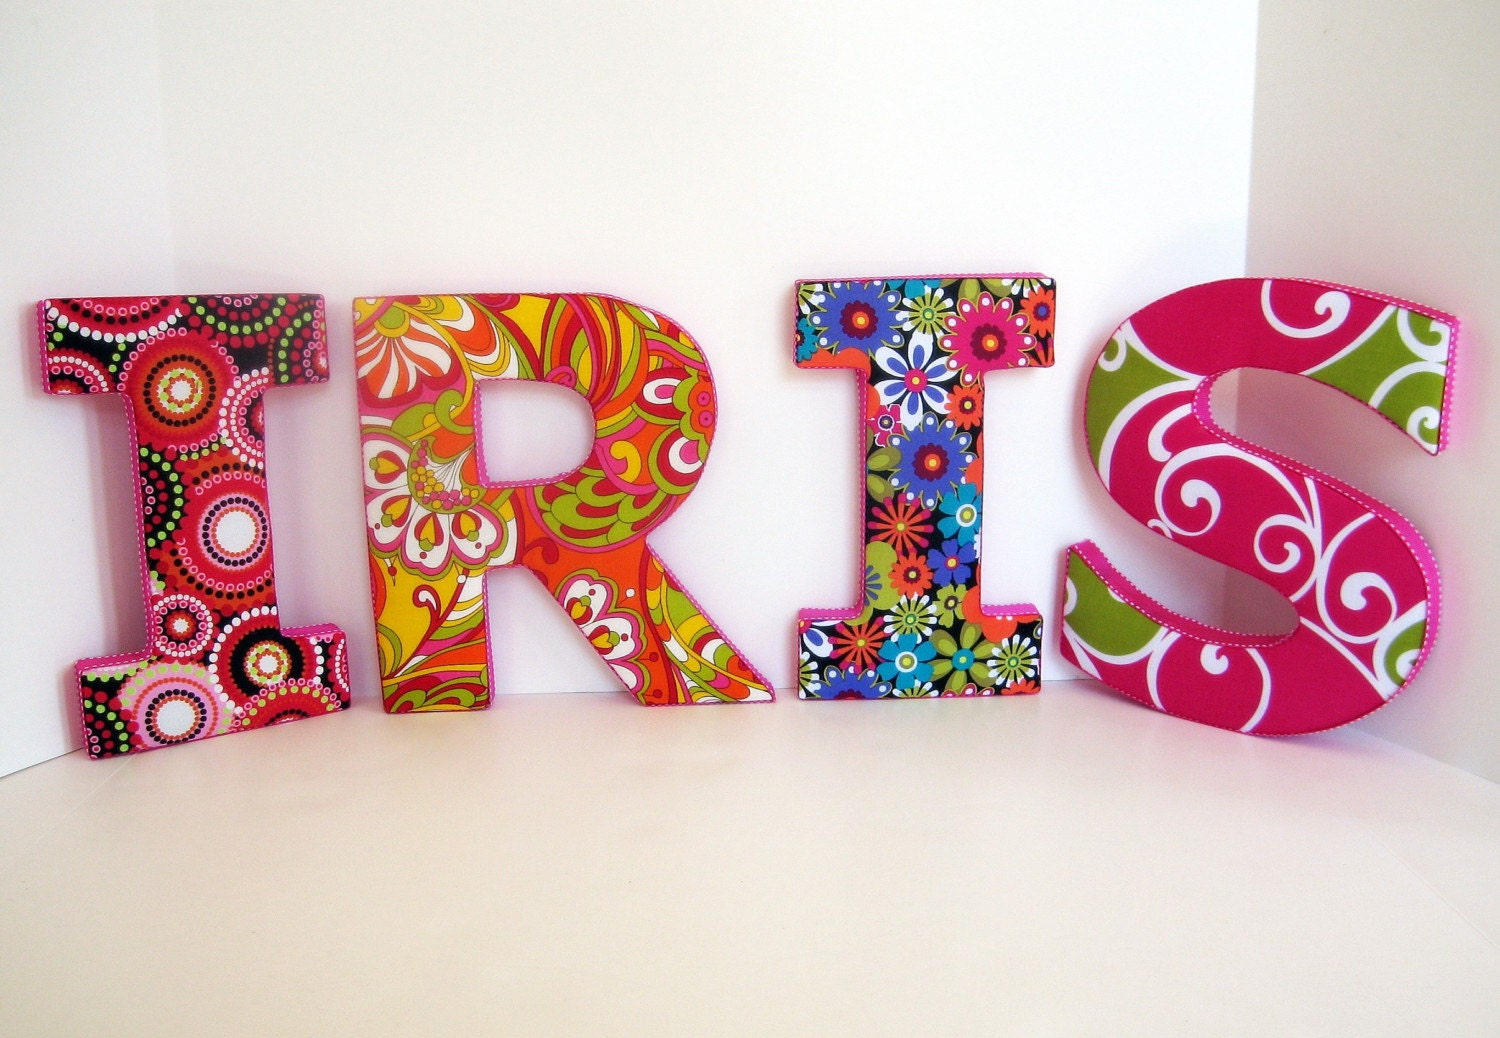 Kids 39 love letters personalized decorative wall art in for Decoration 5 letters